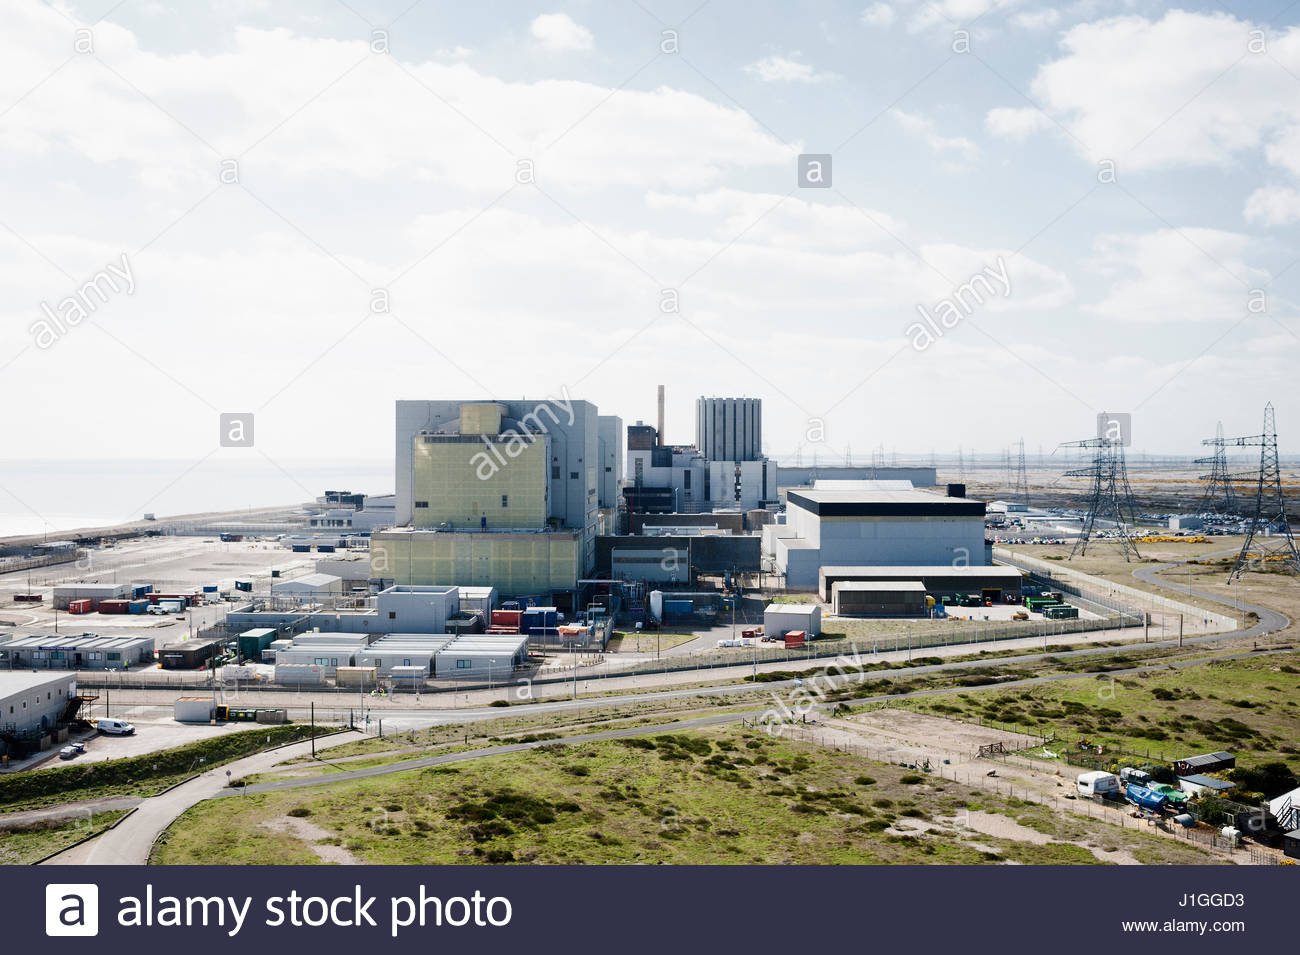 Dungeness Nucleur Power Station, Dungeness, Kent, UK. Wednesday 5th April 2017. (c) Jonathan James Syer / Alamy - Stock Image